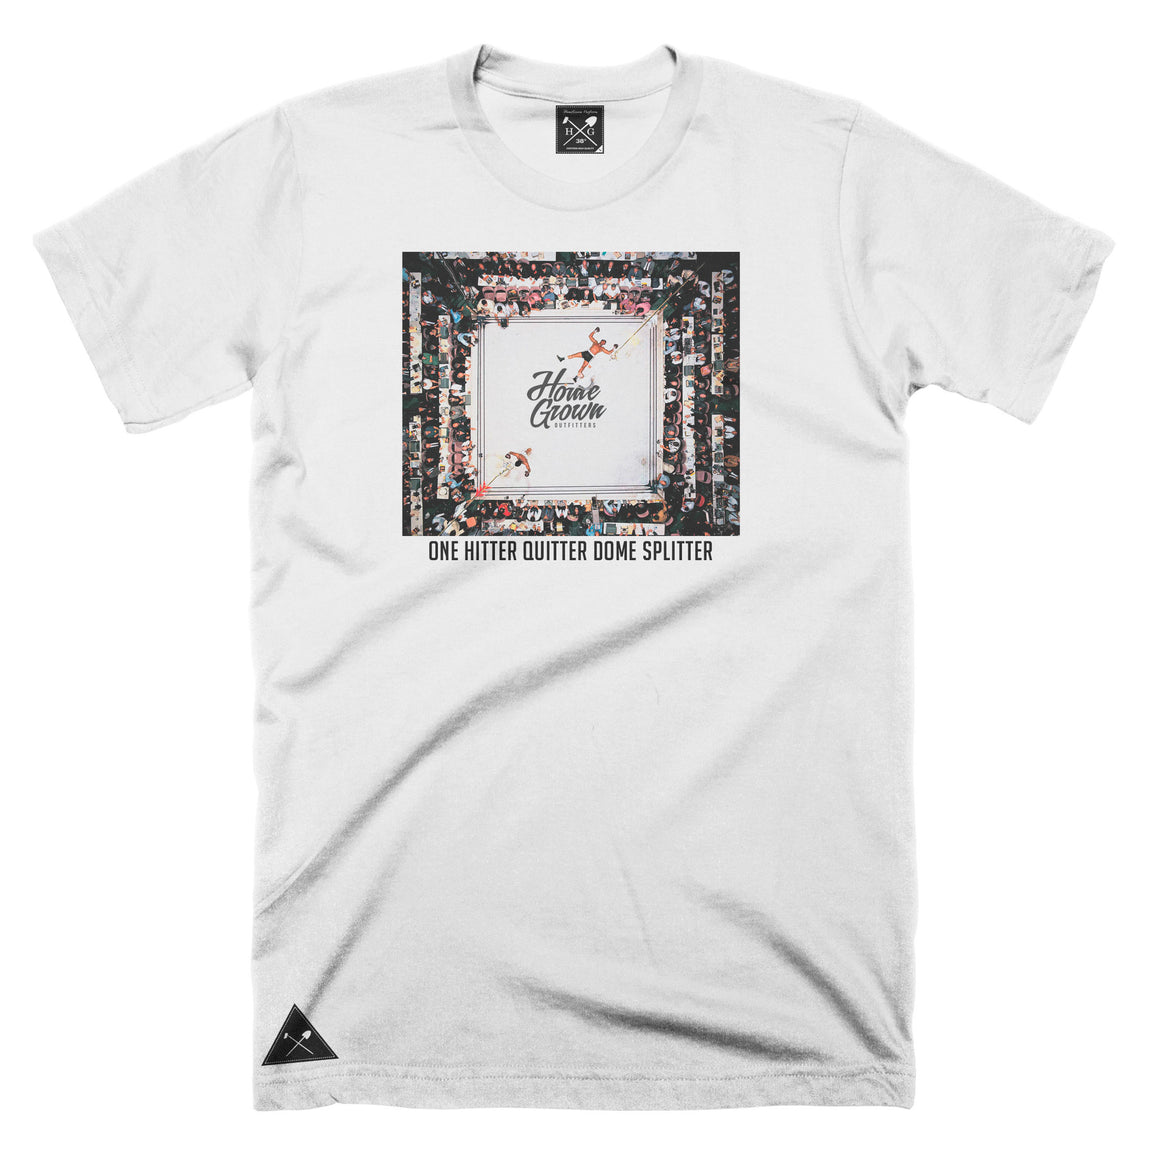 One Hitter Quitter Dome Splitter t-shirt - White